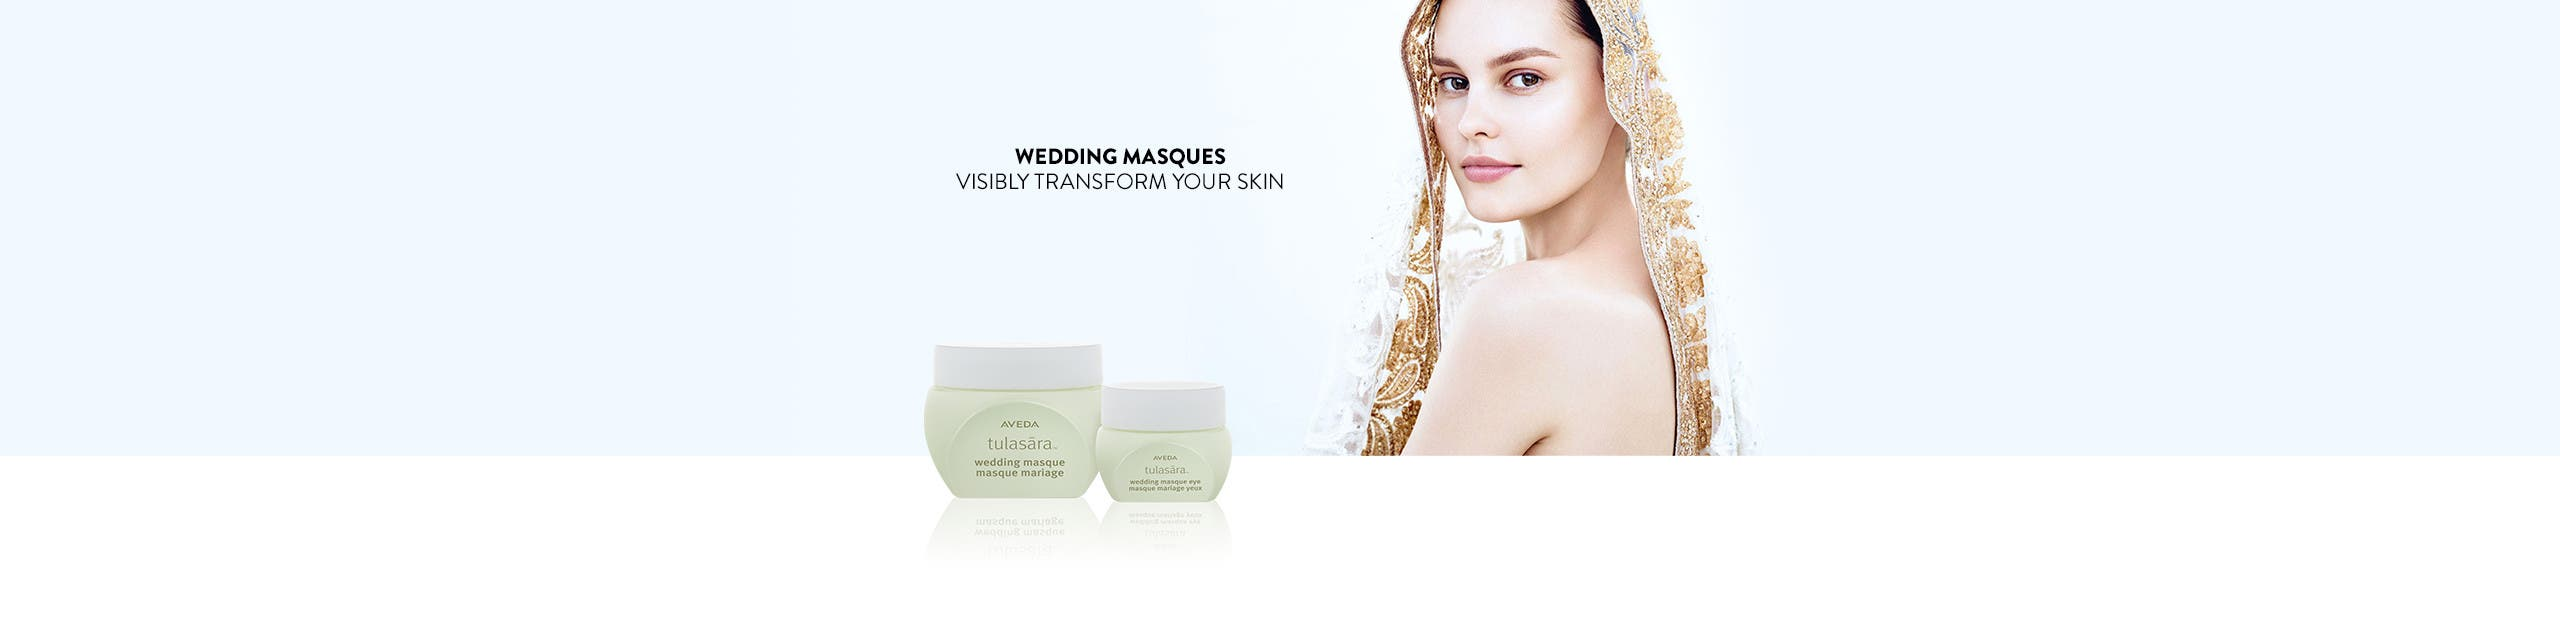 Wedding masques visibly transform your skin.